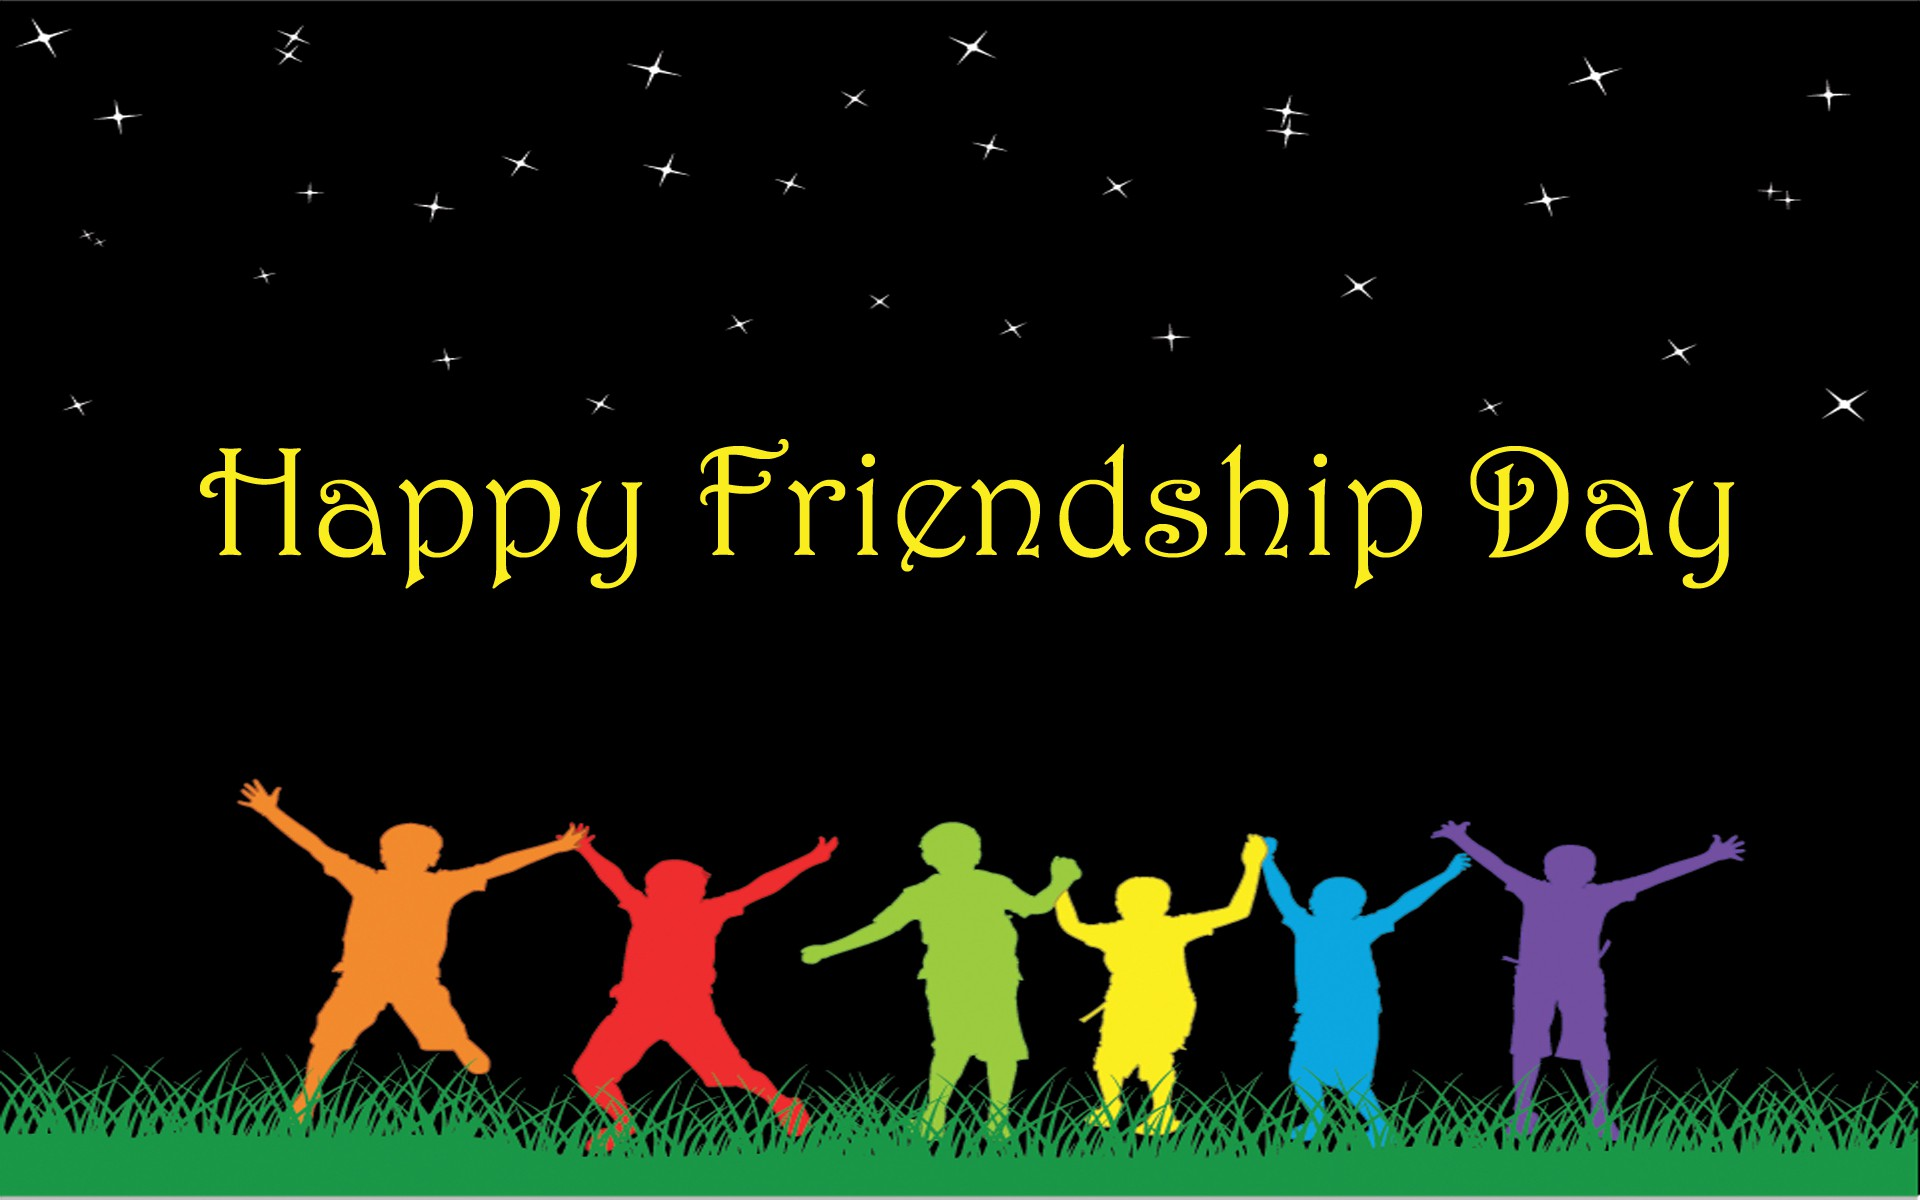 Friendship Day Latest Wallpaper